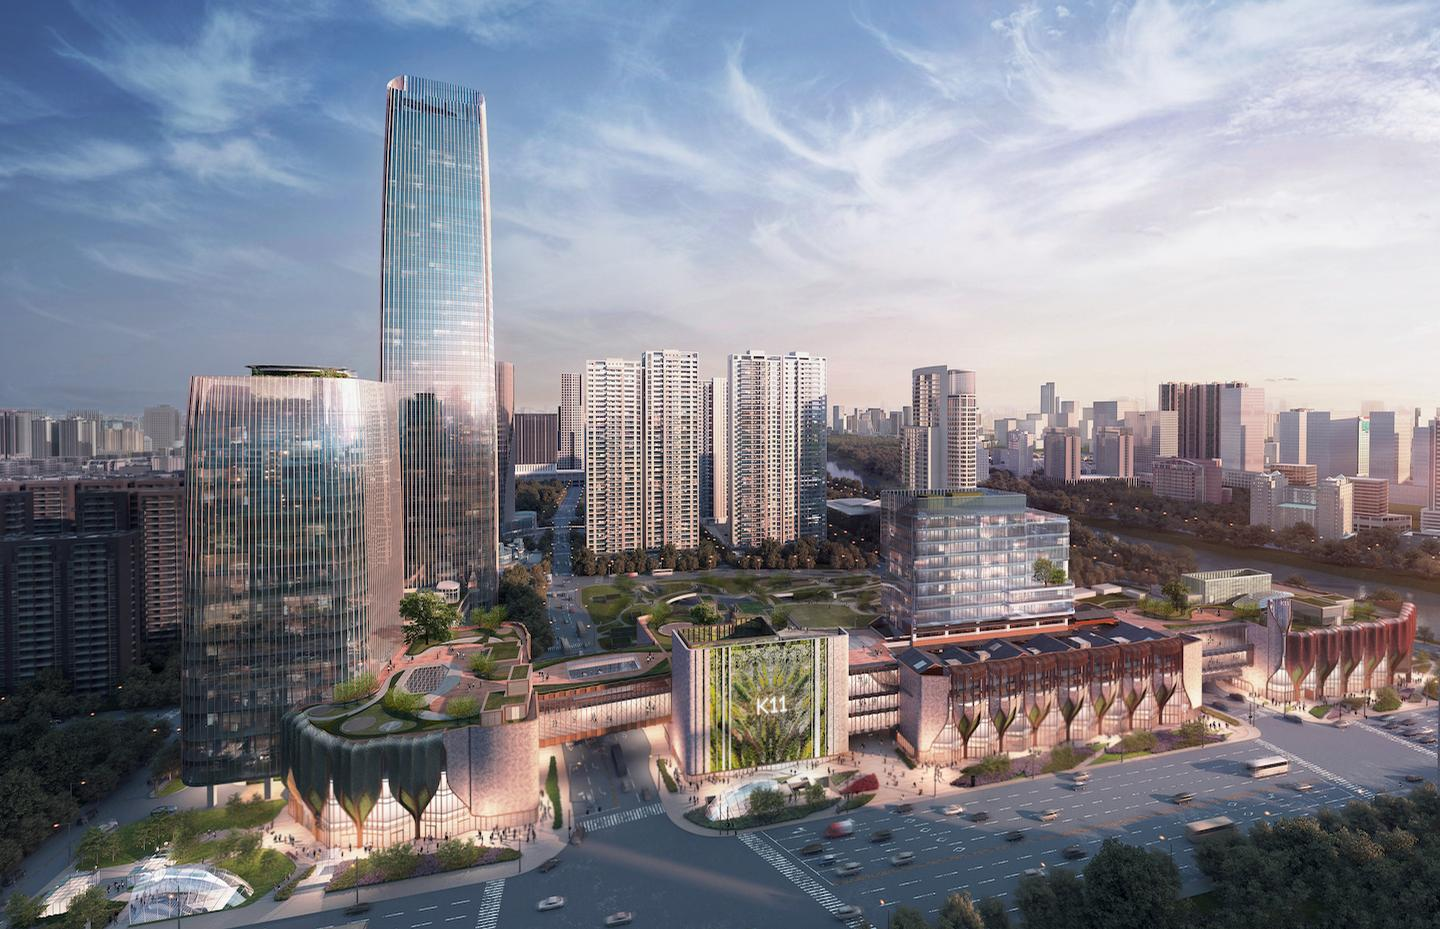 The area is designed to be a new green landmark for the city with Ningbo New World Plaza designed as an eco-friendly environment with key sustainable concepts